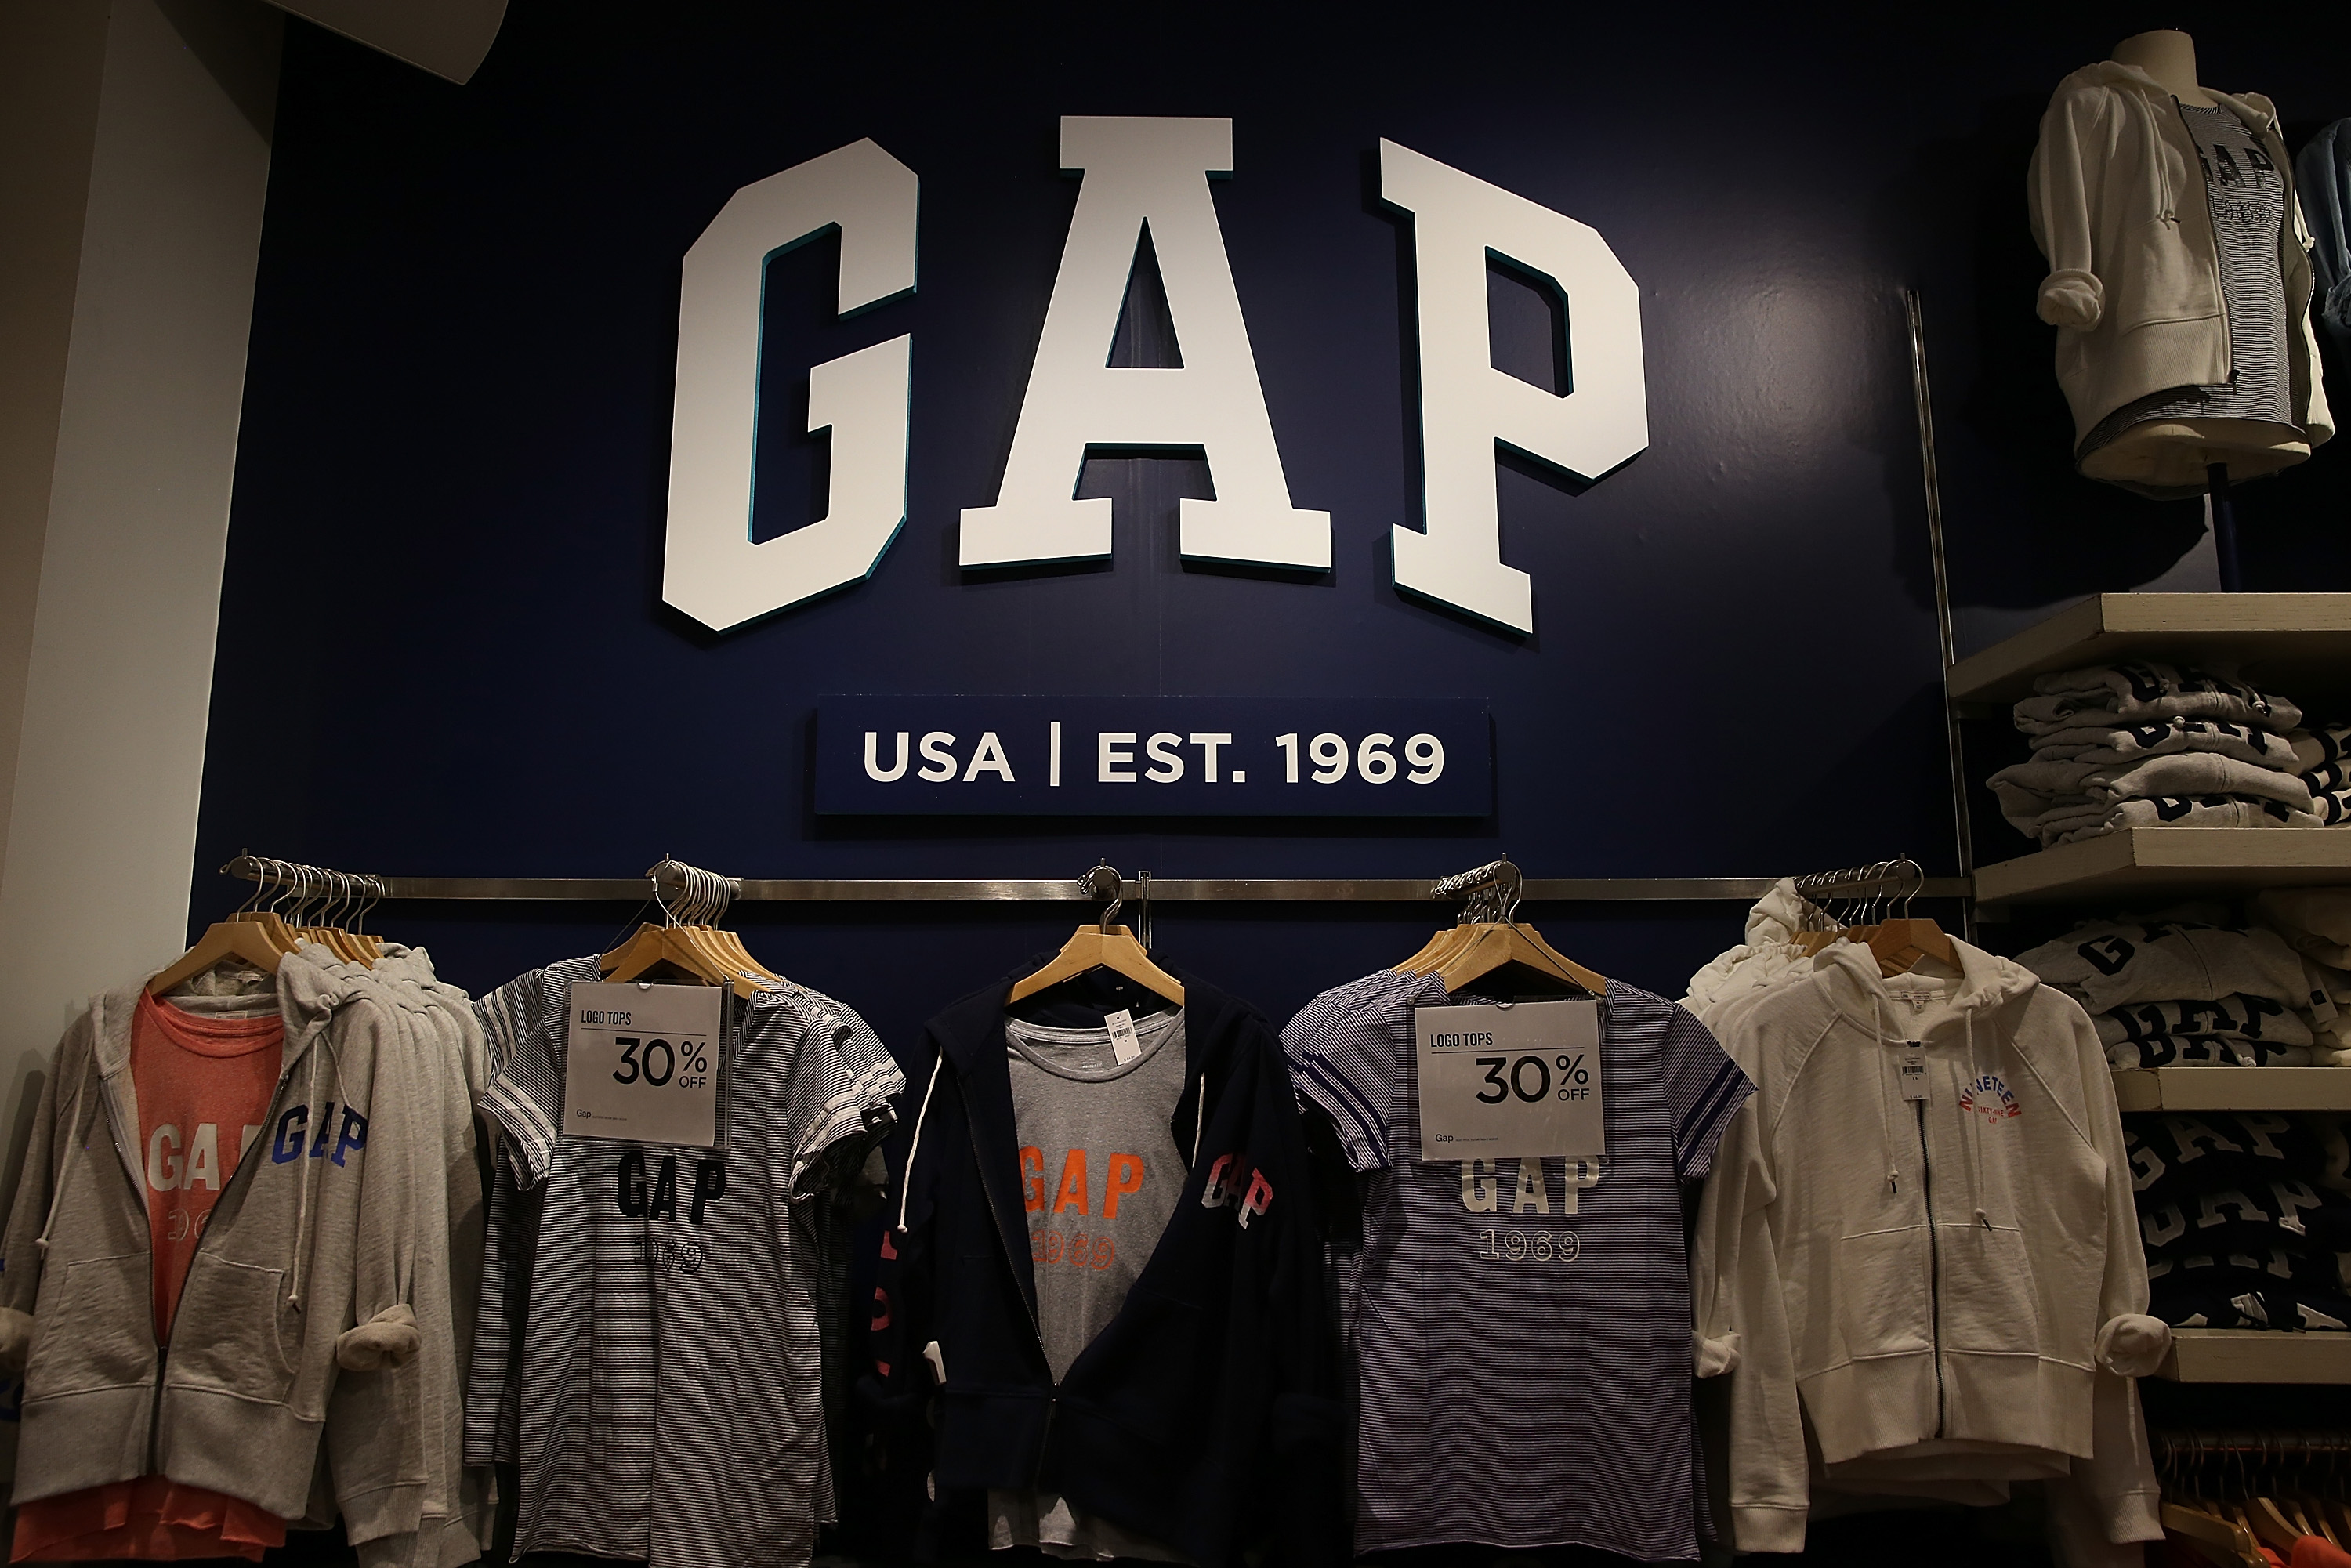 Gap has pulled an ad image that some found racially insensitive.